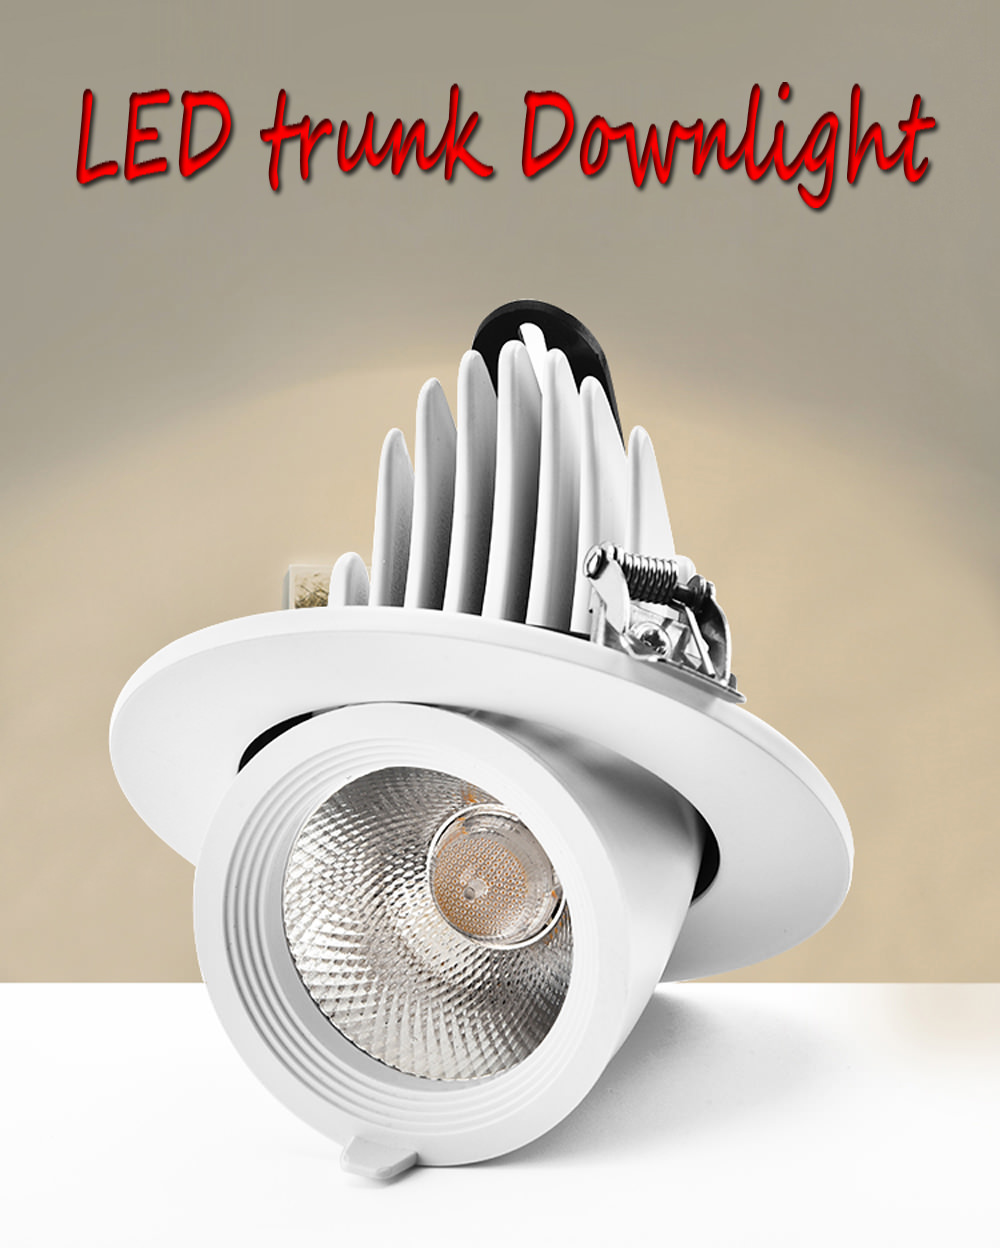 new jw-x02 led trunk downlight